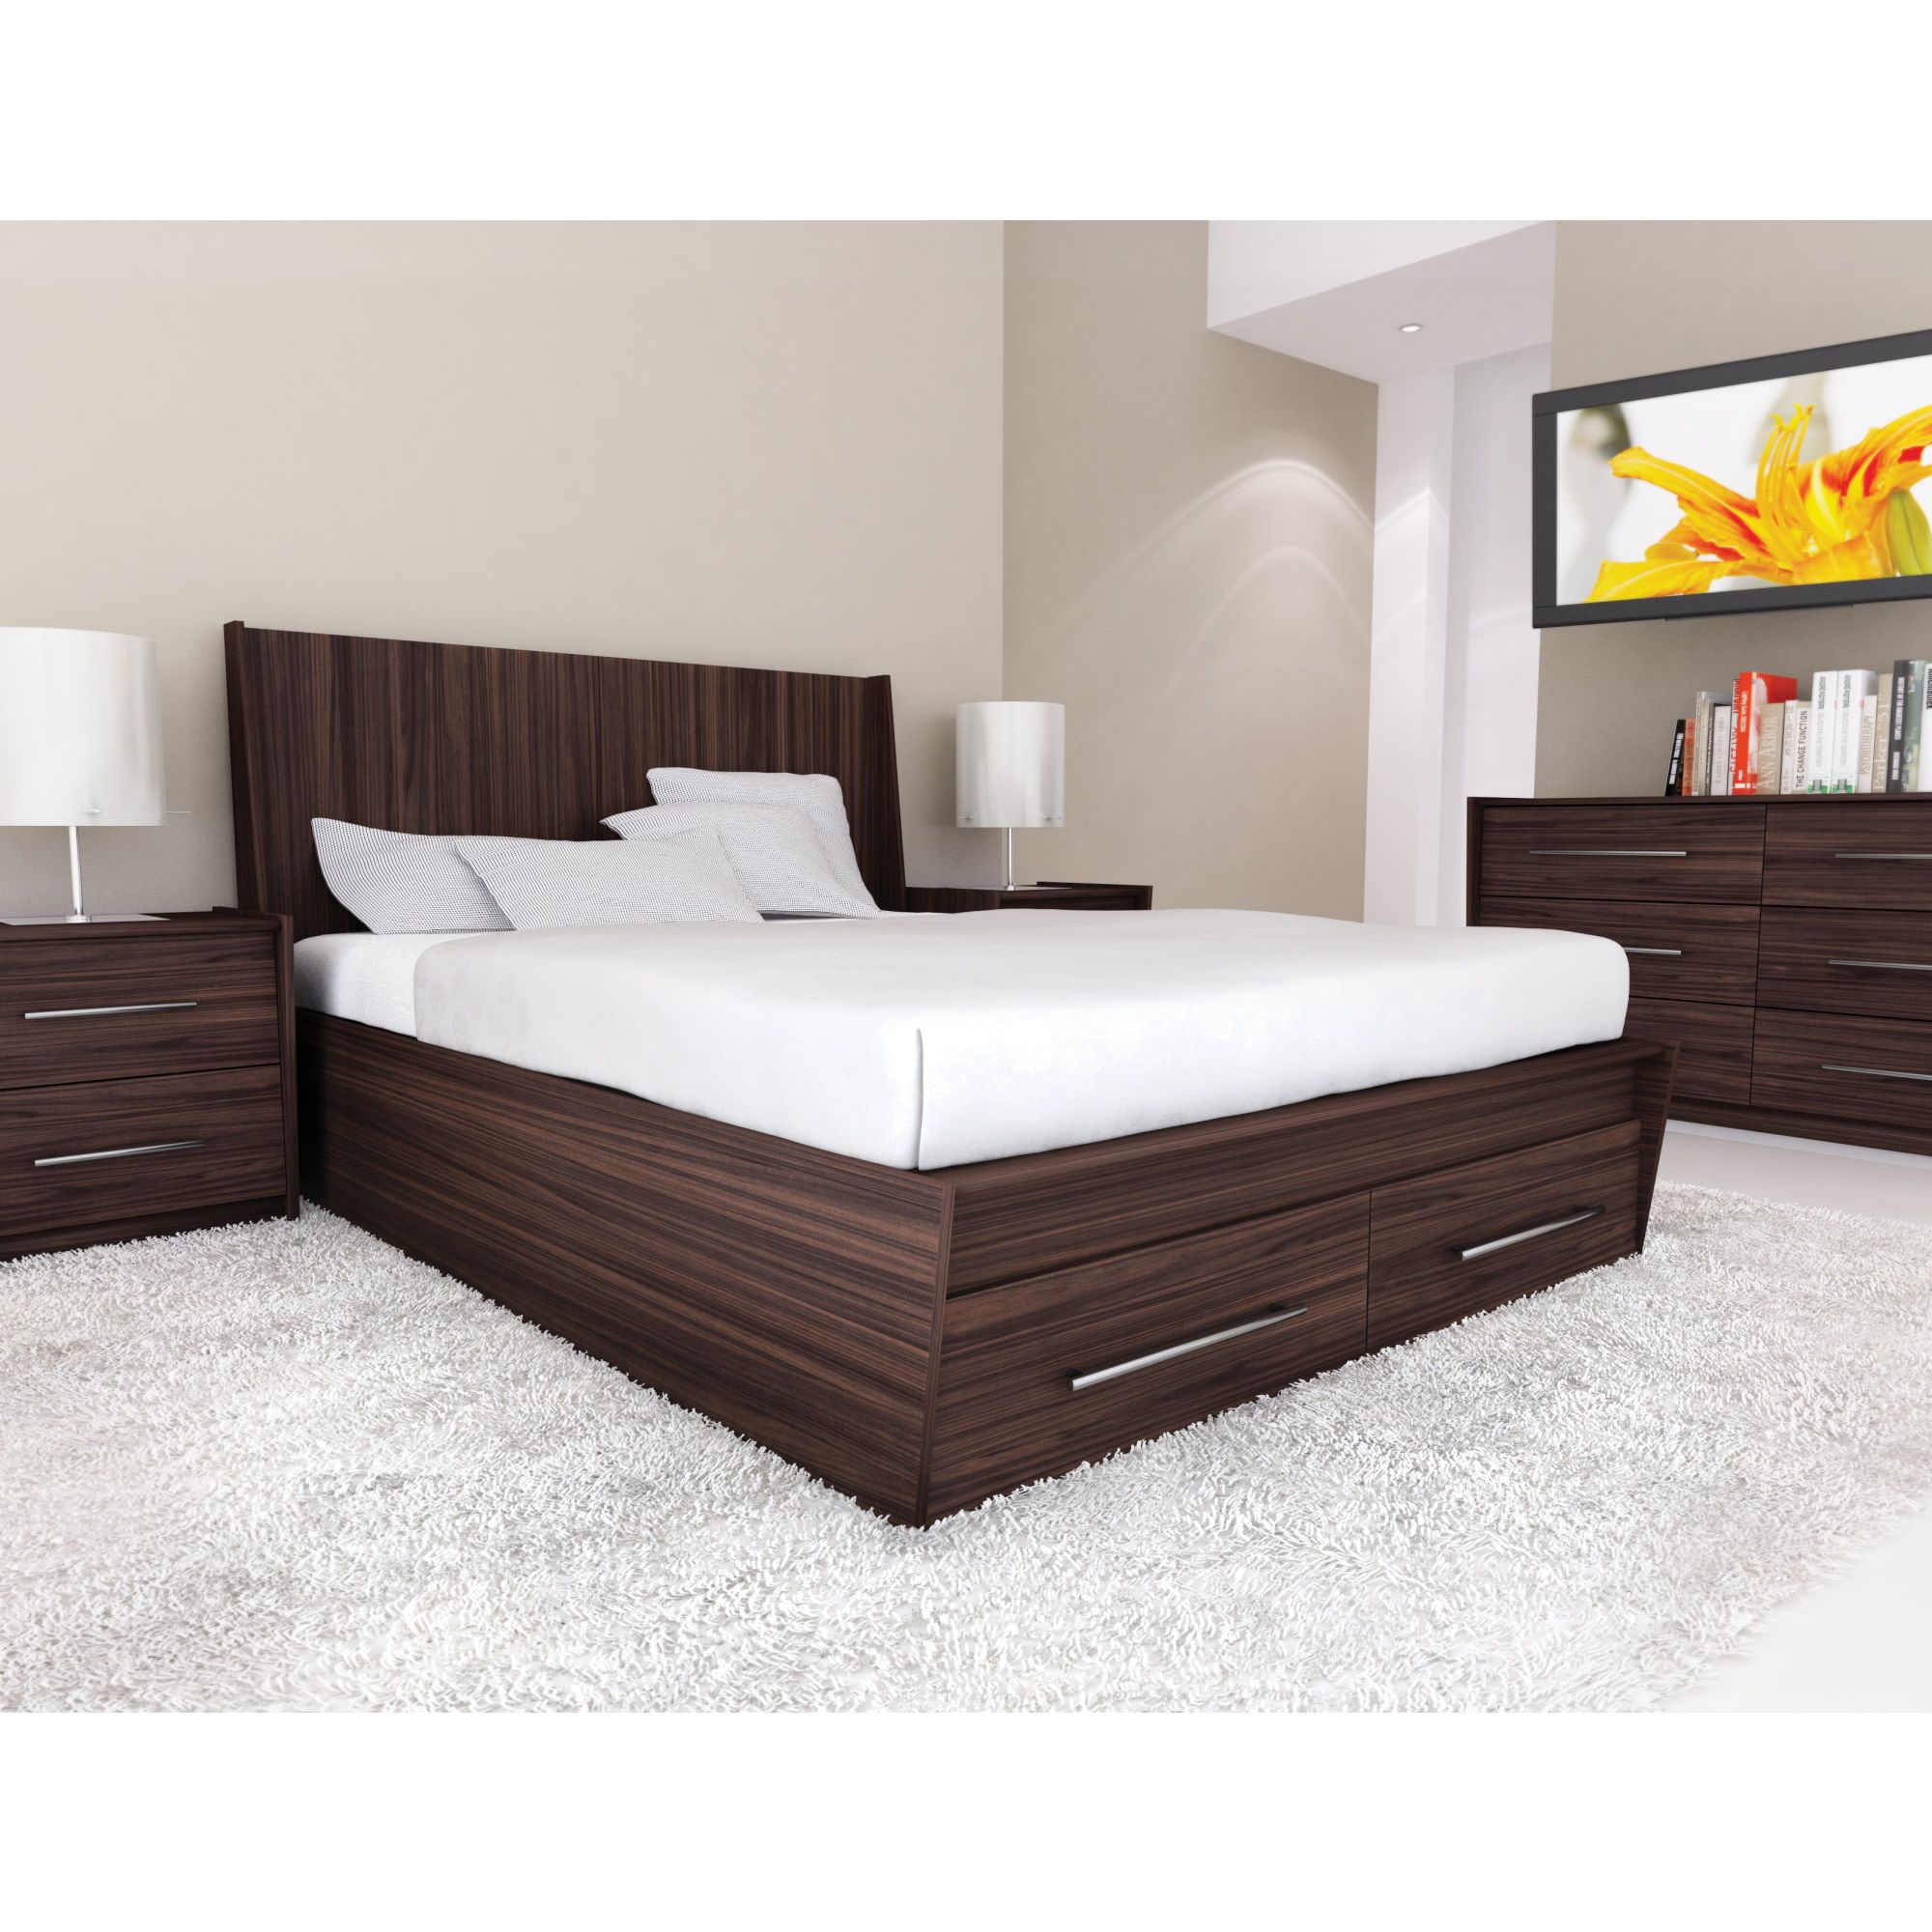 Bed designs for your comfortable bedroom interior design ideas wooden double bed designs for Home furniture and mattress